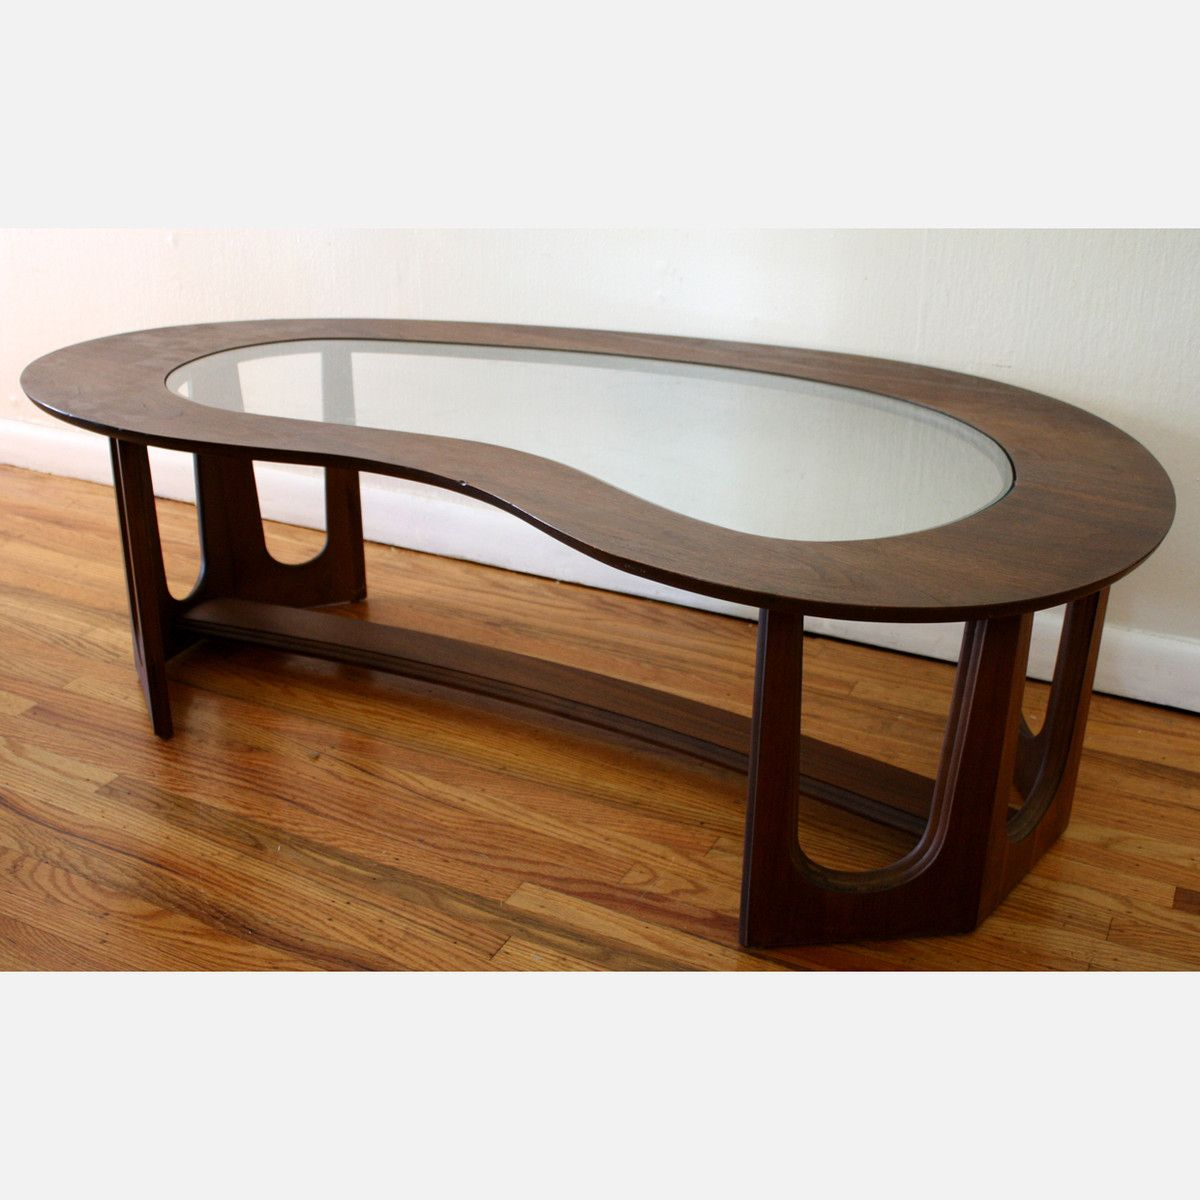 Kidney shaped coffee table by picked vintage mid century